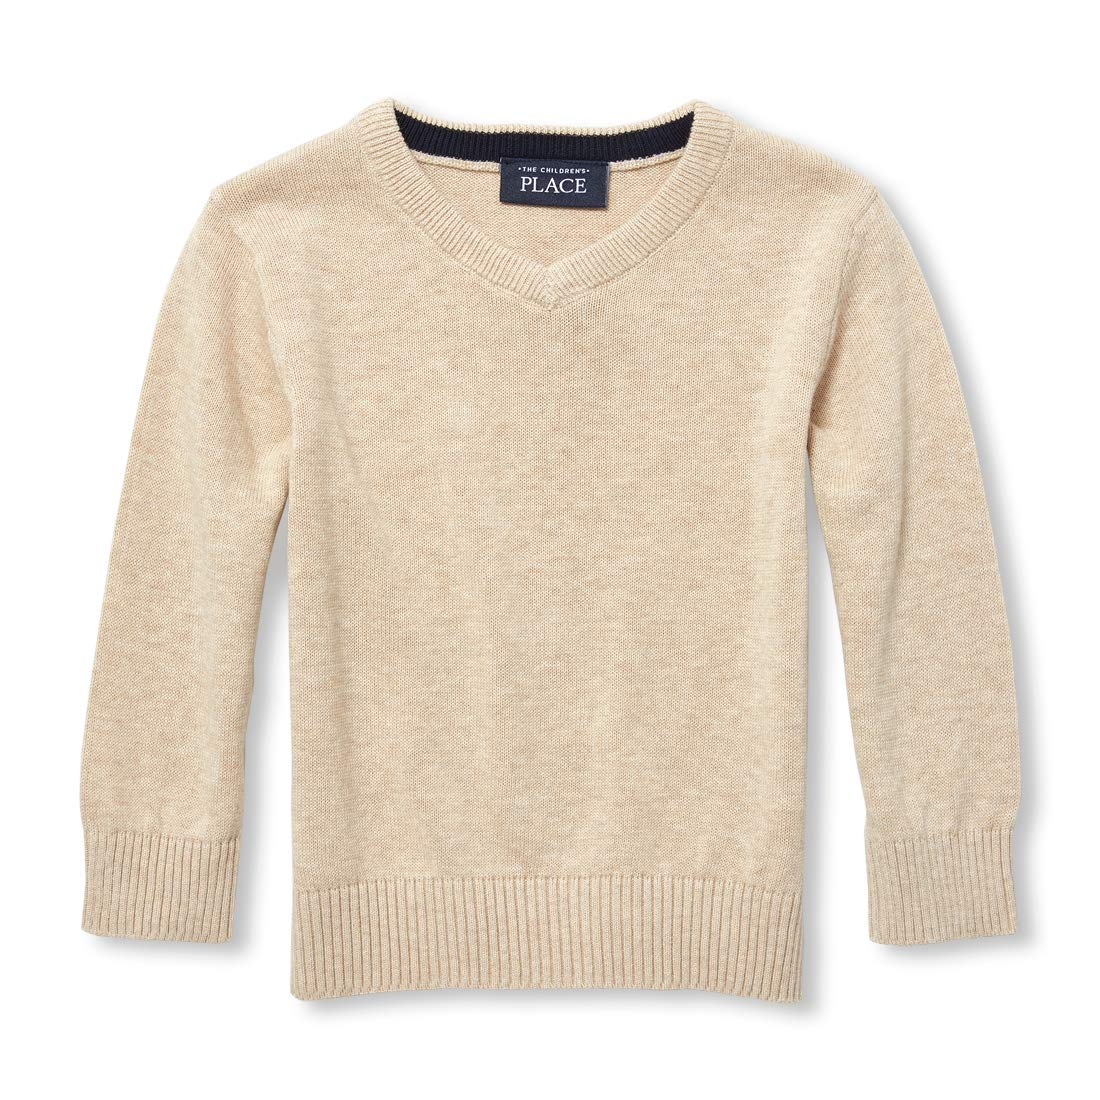 The Children's Place Baby Boys Solid Vneck Sweater The Children' s Place 2102847